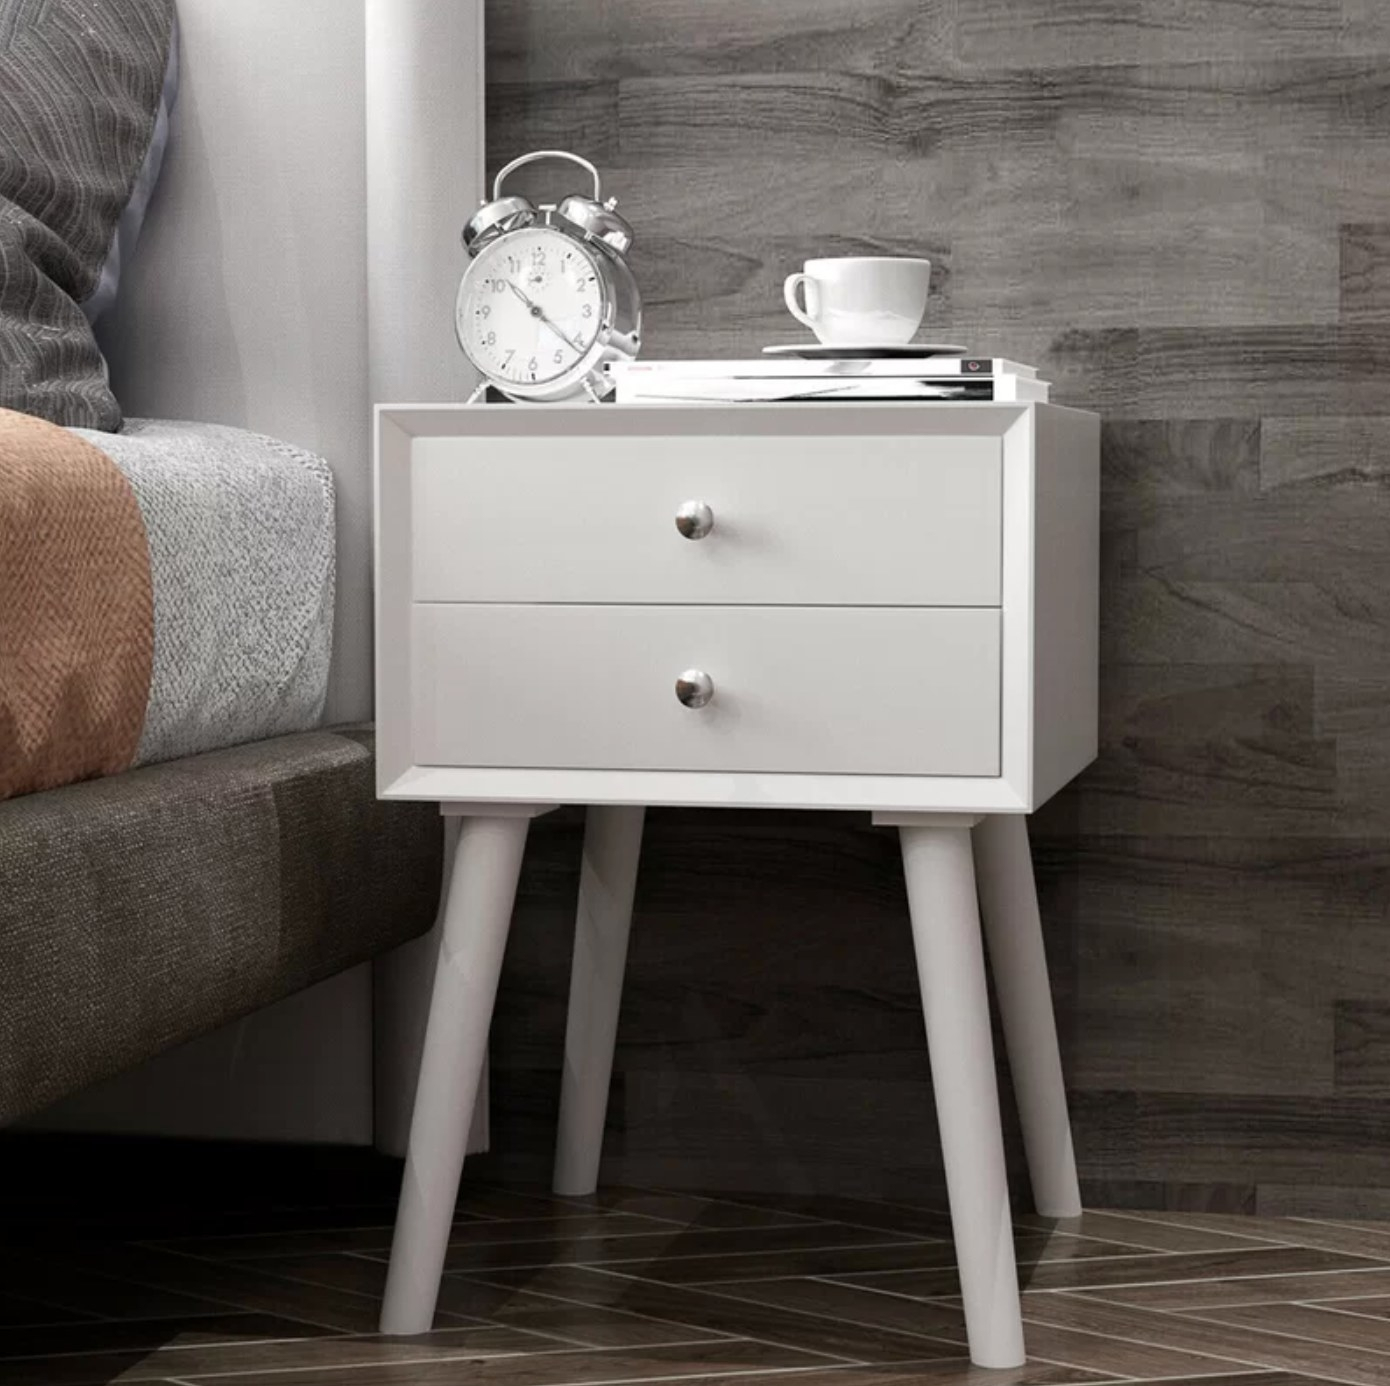 The two-drawer nightstand in white